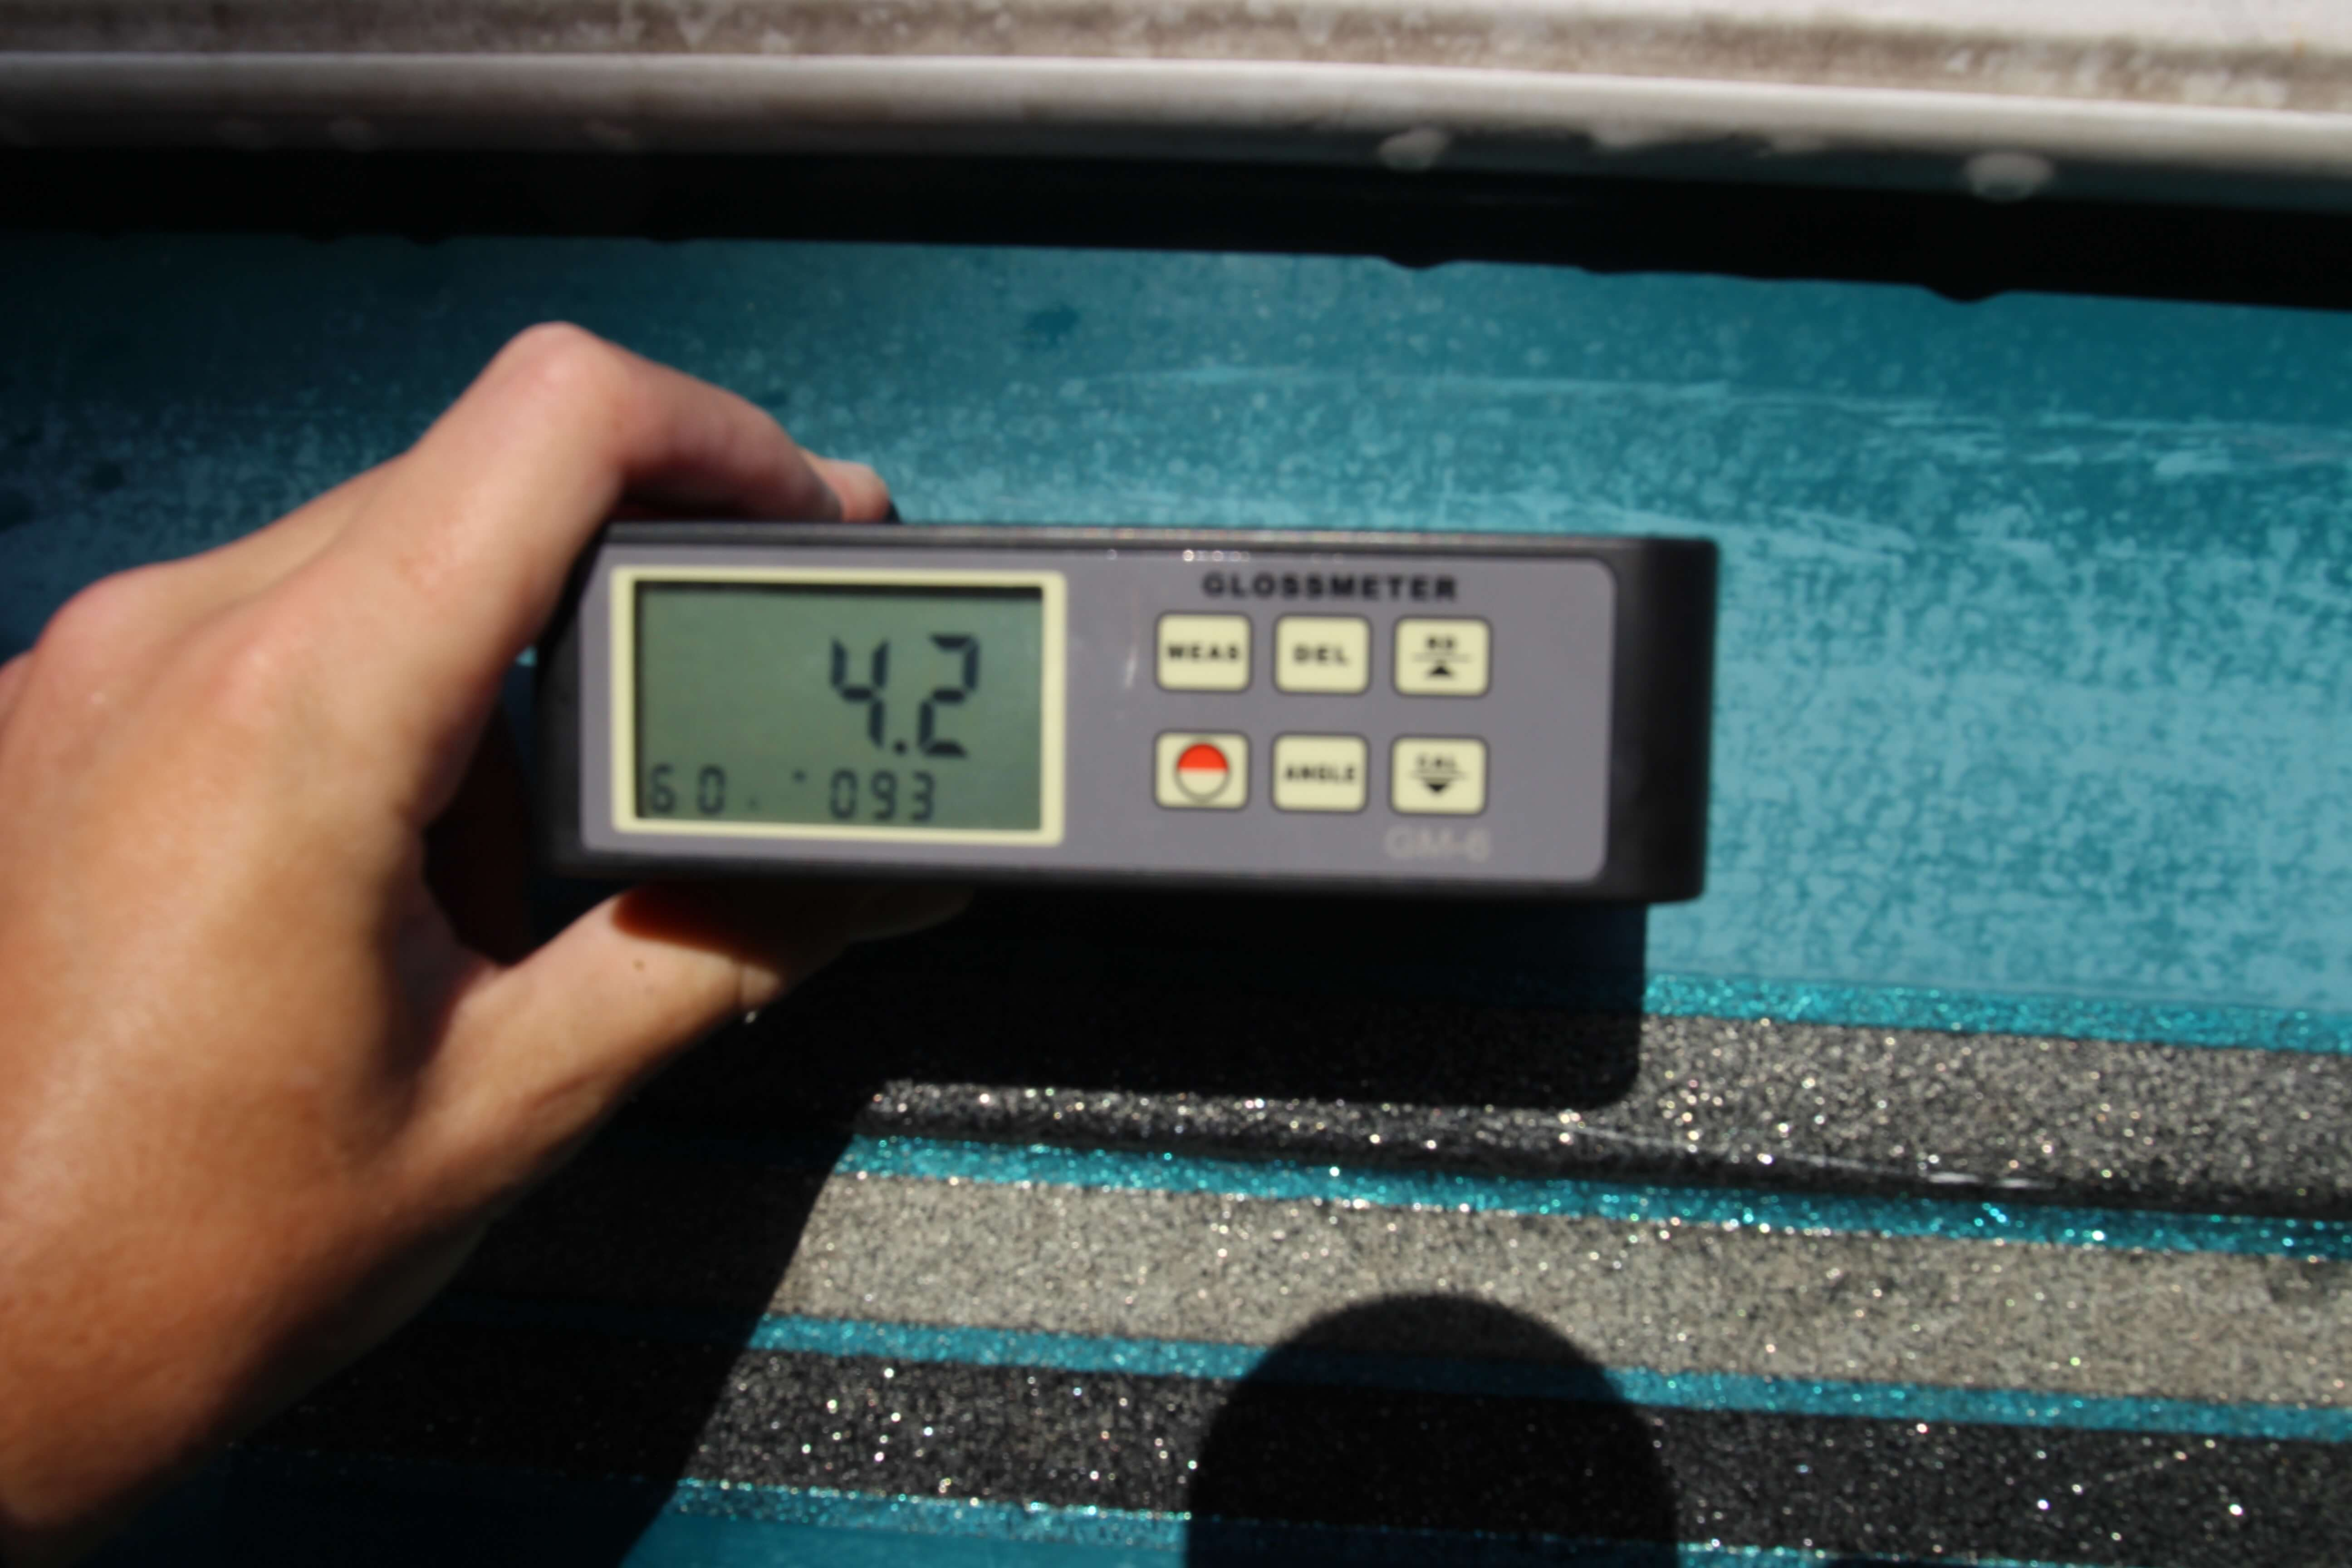 4.2 gloss meter reading on green hulled boat